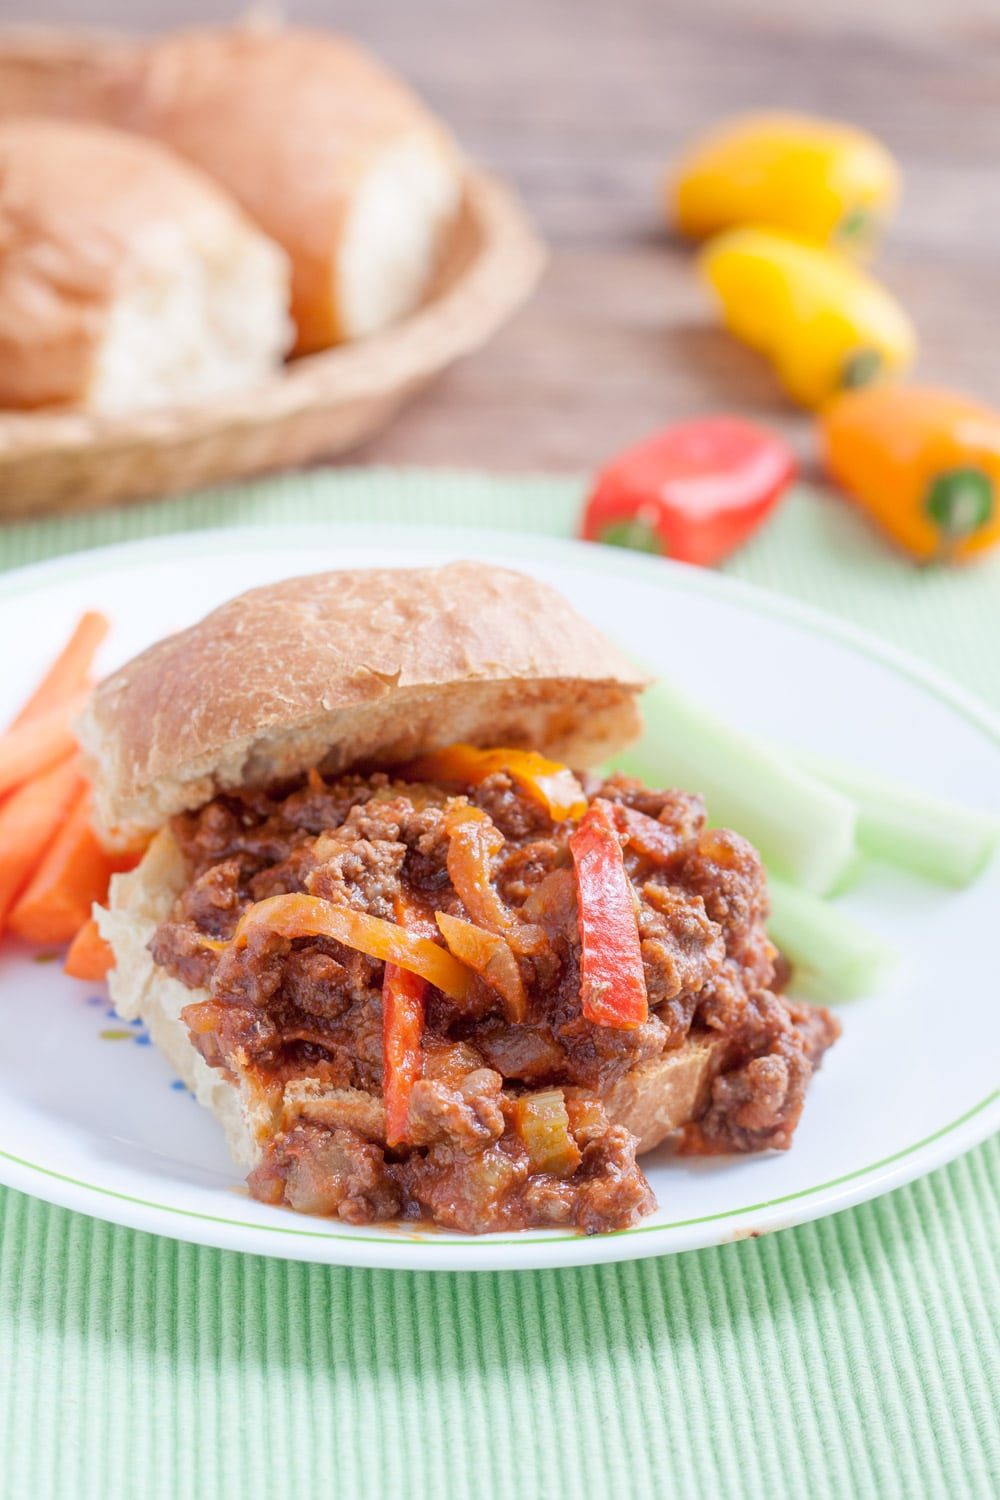 sloppy joe with orange read and yellow pepper strips